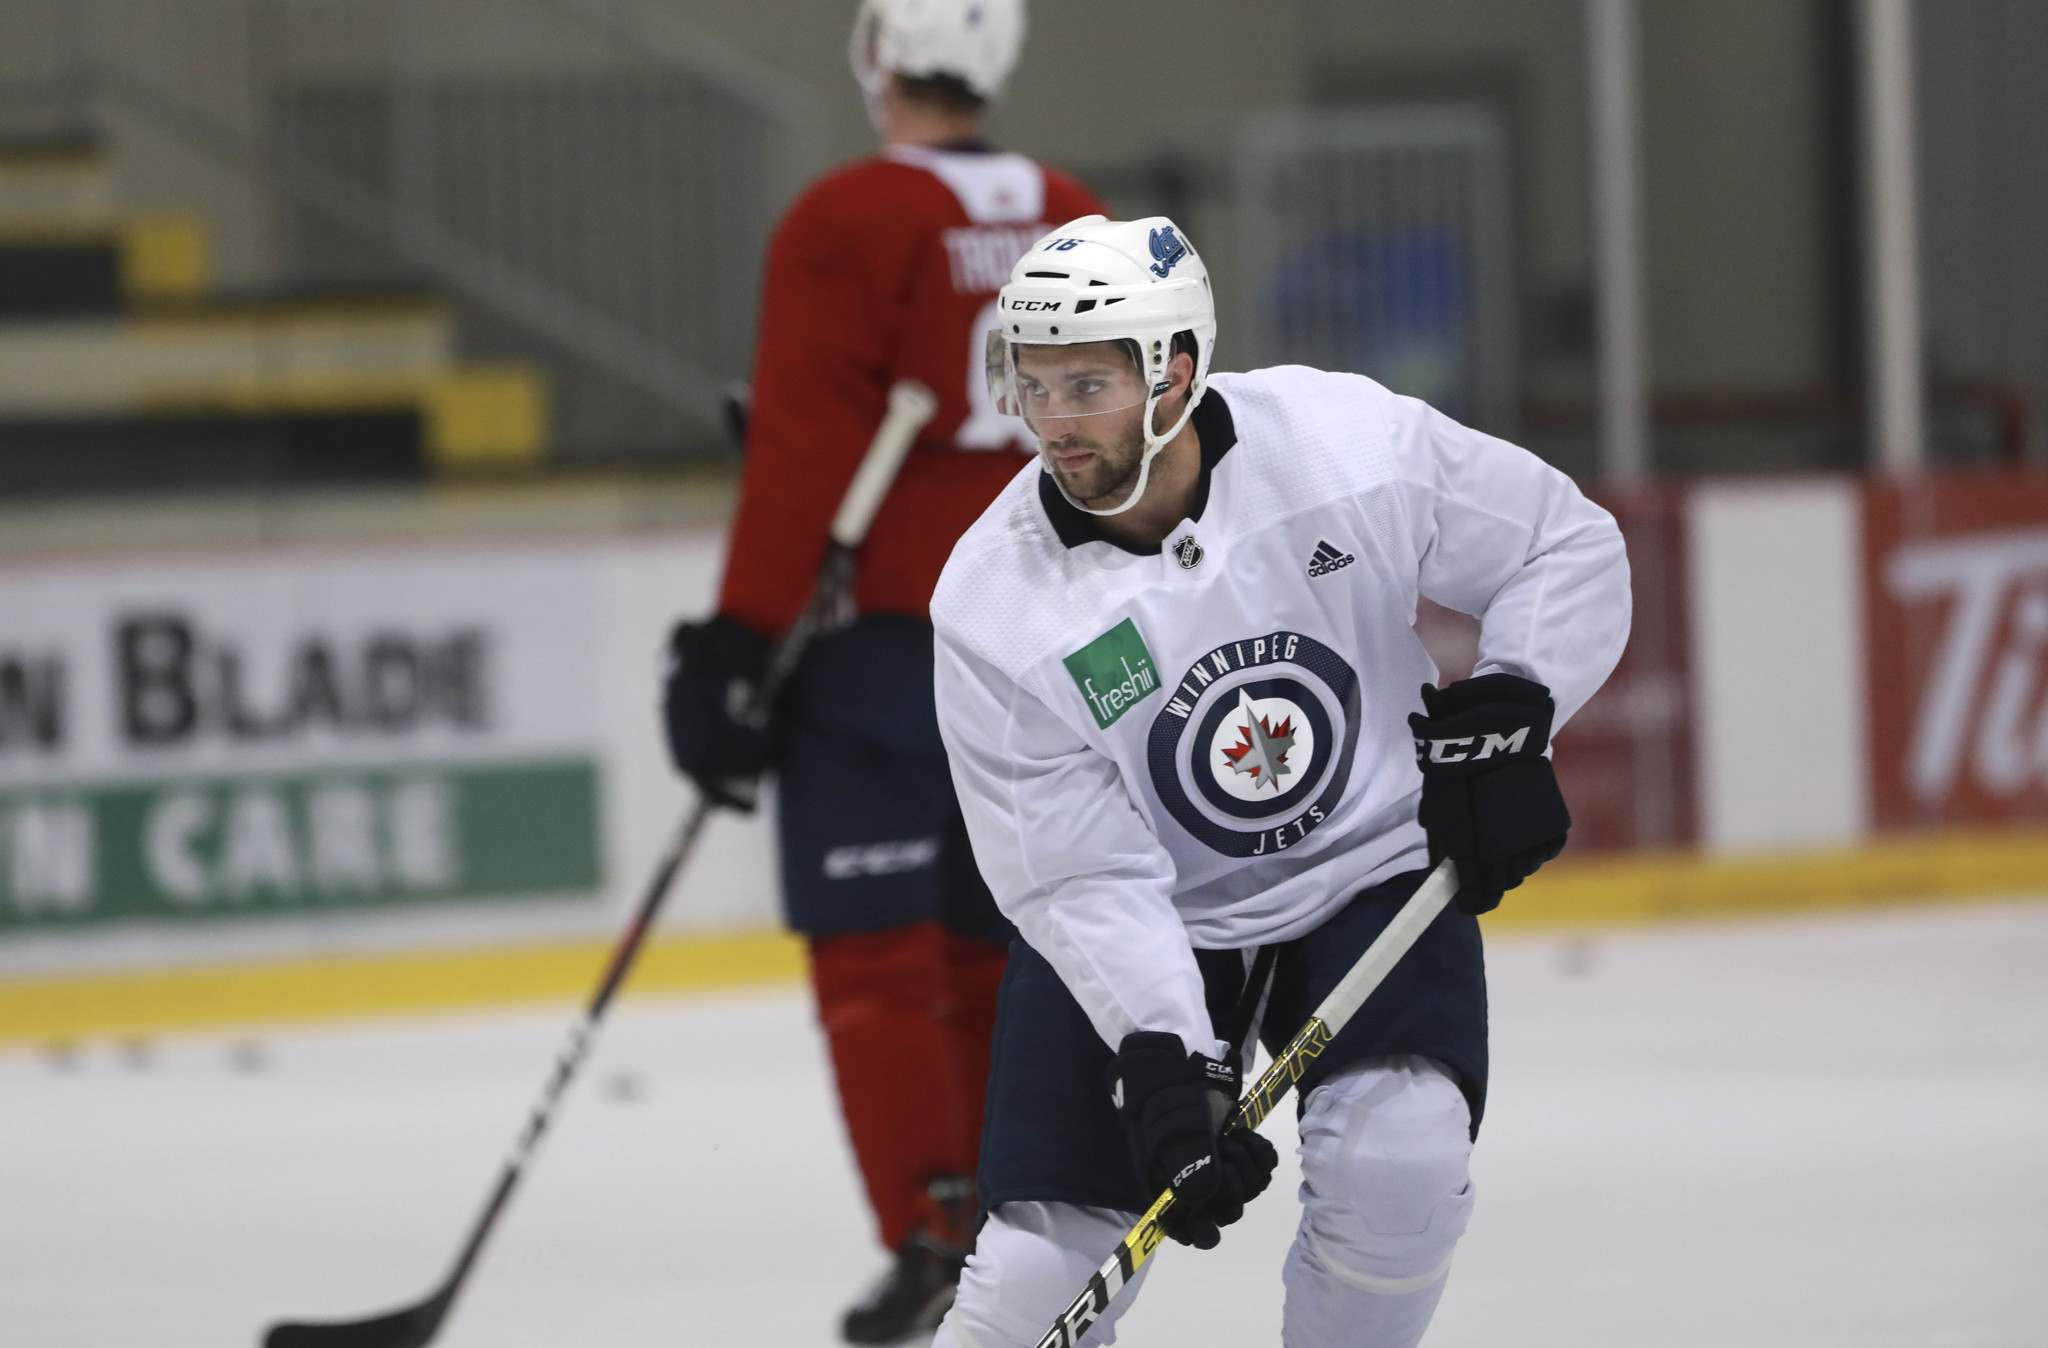 Griffith was drafted by Boston in the fifth round in 2012 and scored six goals and four assists in 30 regular-season games in 2014-15, but since has bounced around to Toronto, Florida and Buffalo and played in only 49 NHL games in the three years since his debut. (Ruth Bonneville / Winnipeg Free Press)</p></p></p>